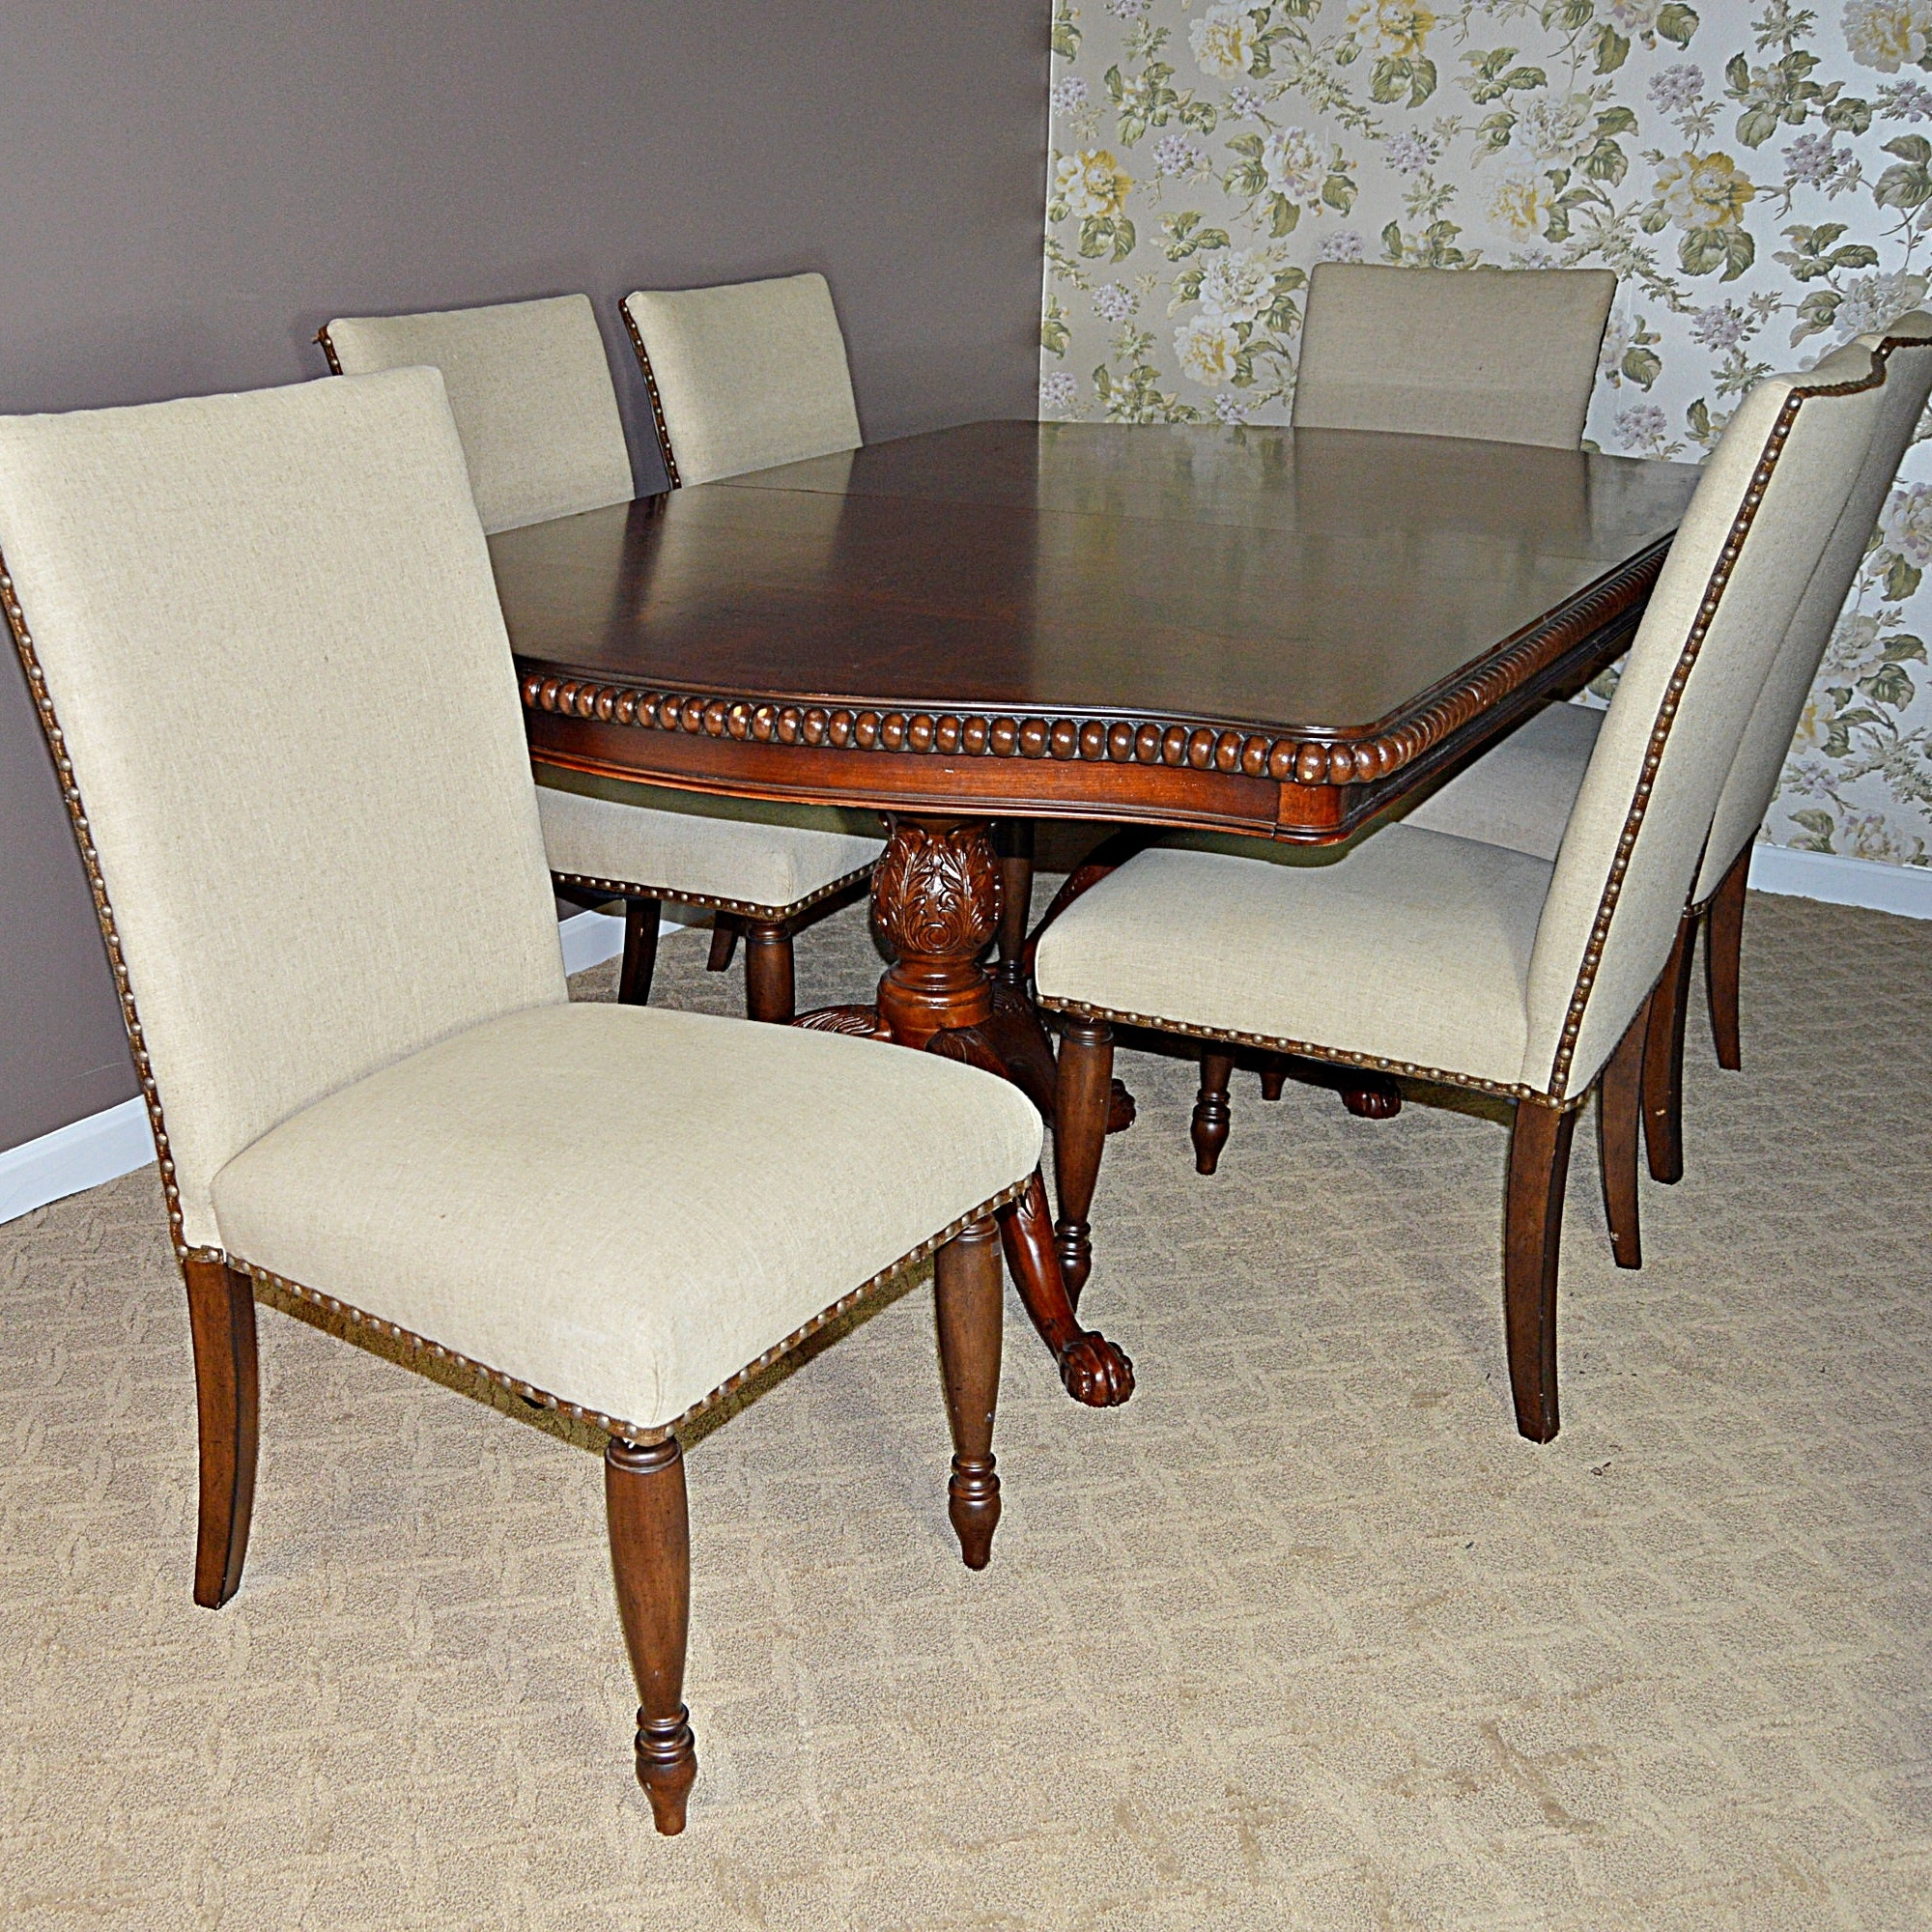 Victorian Style Pedestal Dining Table and Six Linen-Upholstered Dining Chairs